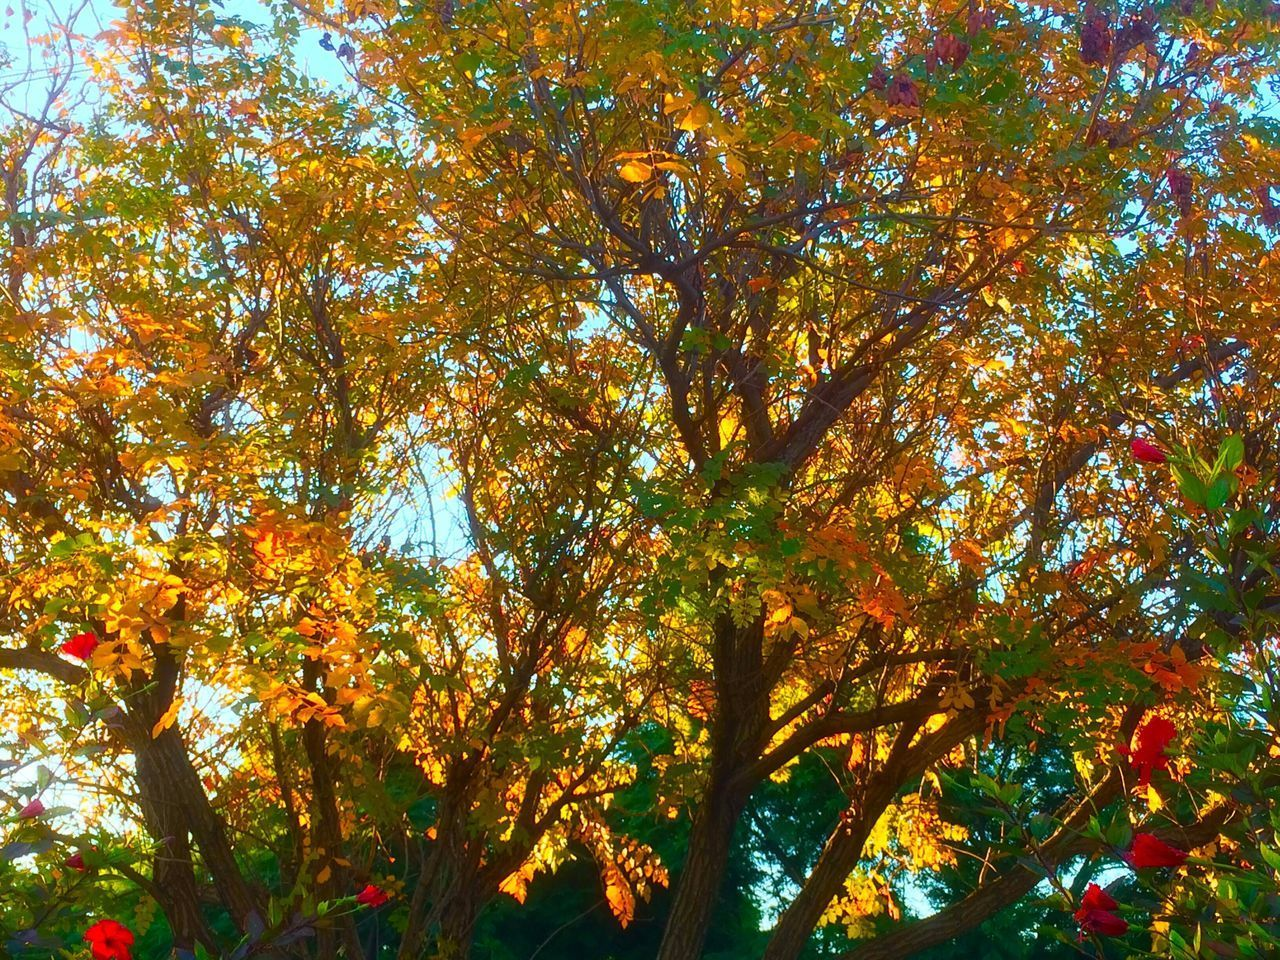 Tree Autumn Leaf Change Nature Beauty In Nature Growth Low Angle View Maple Tree Branch Outdoors Day Tranquility No People Scenics Sky